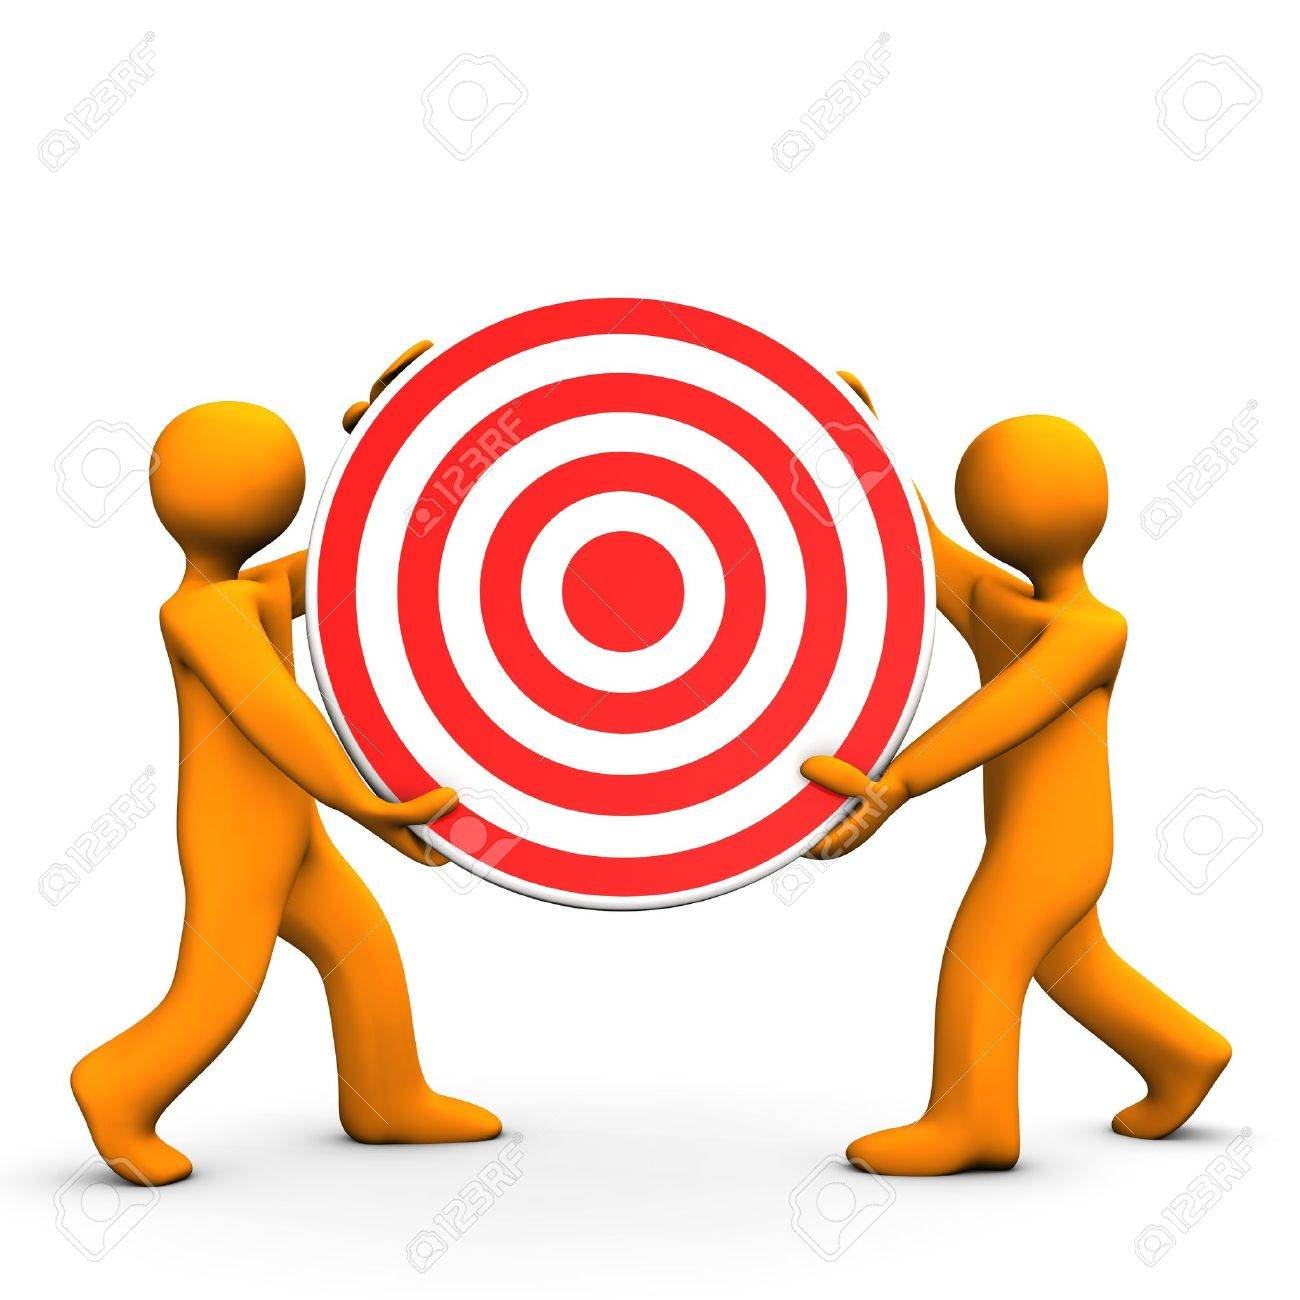 Two orange cartoon characters with red target. Stock Photo - 18987446